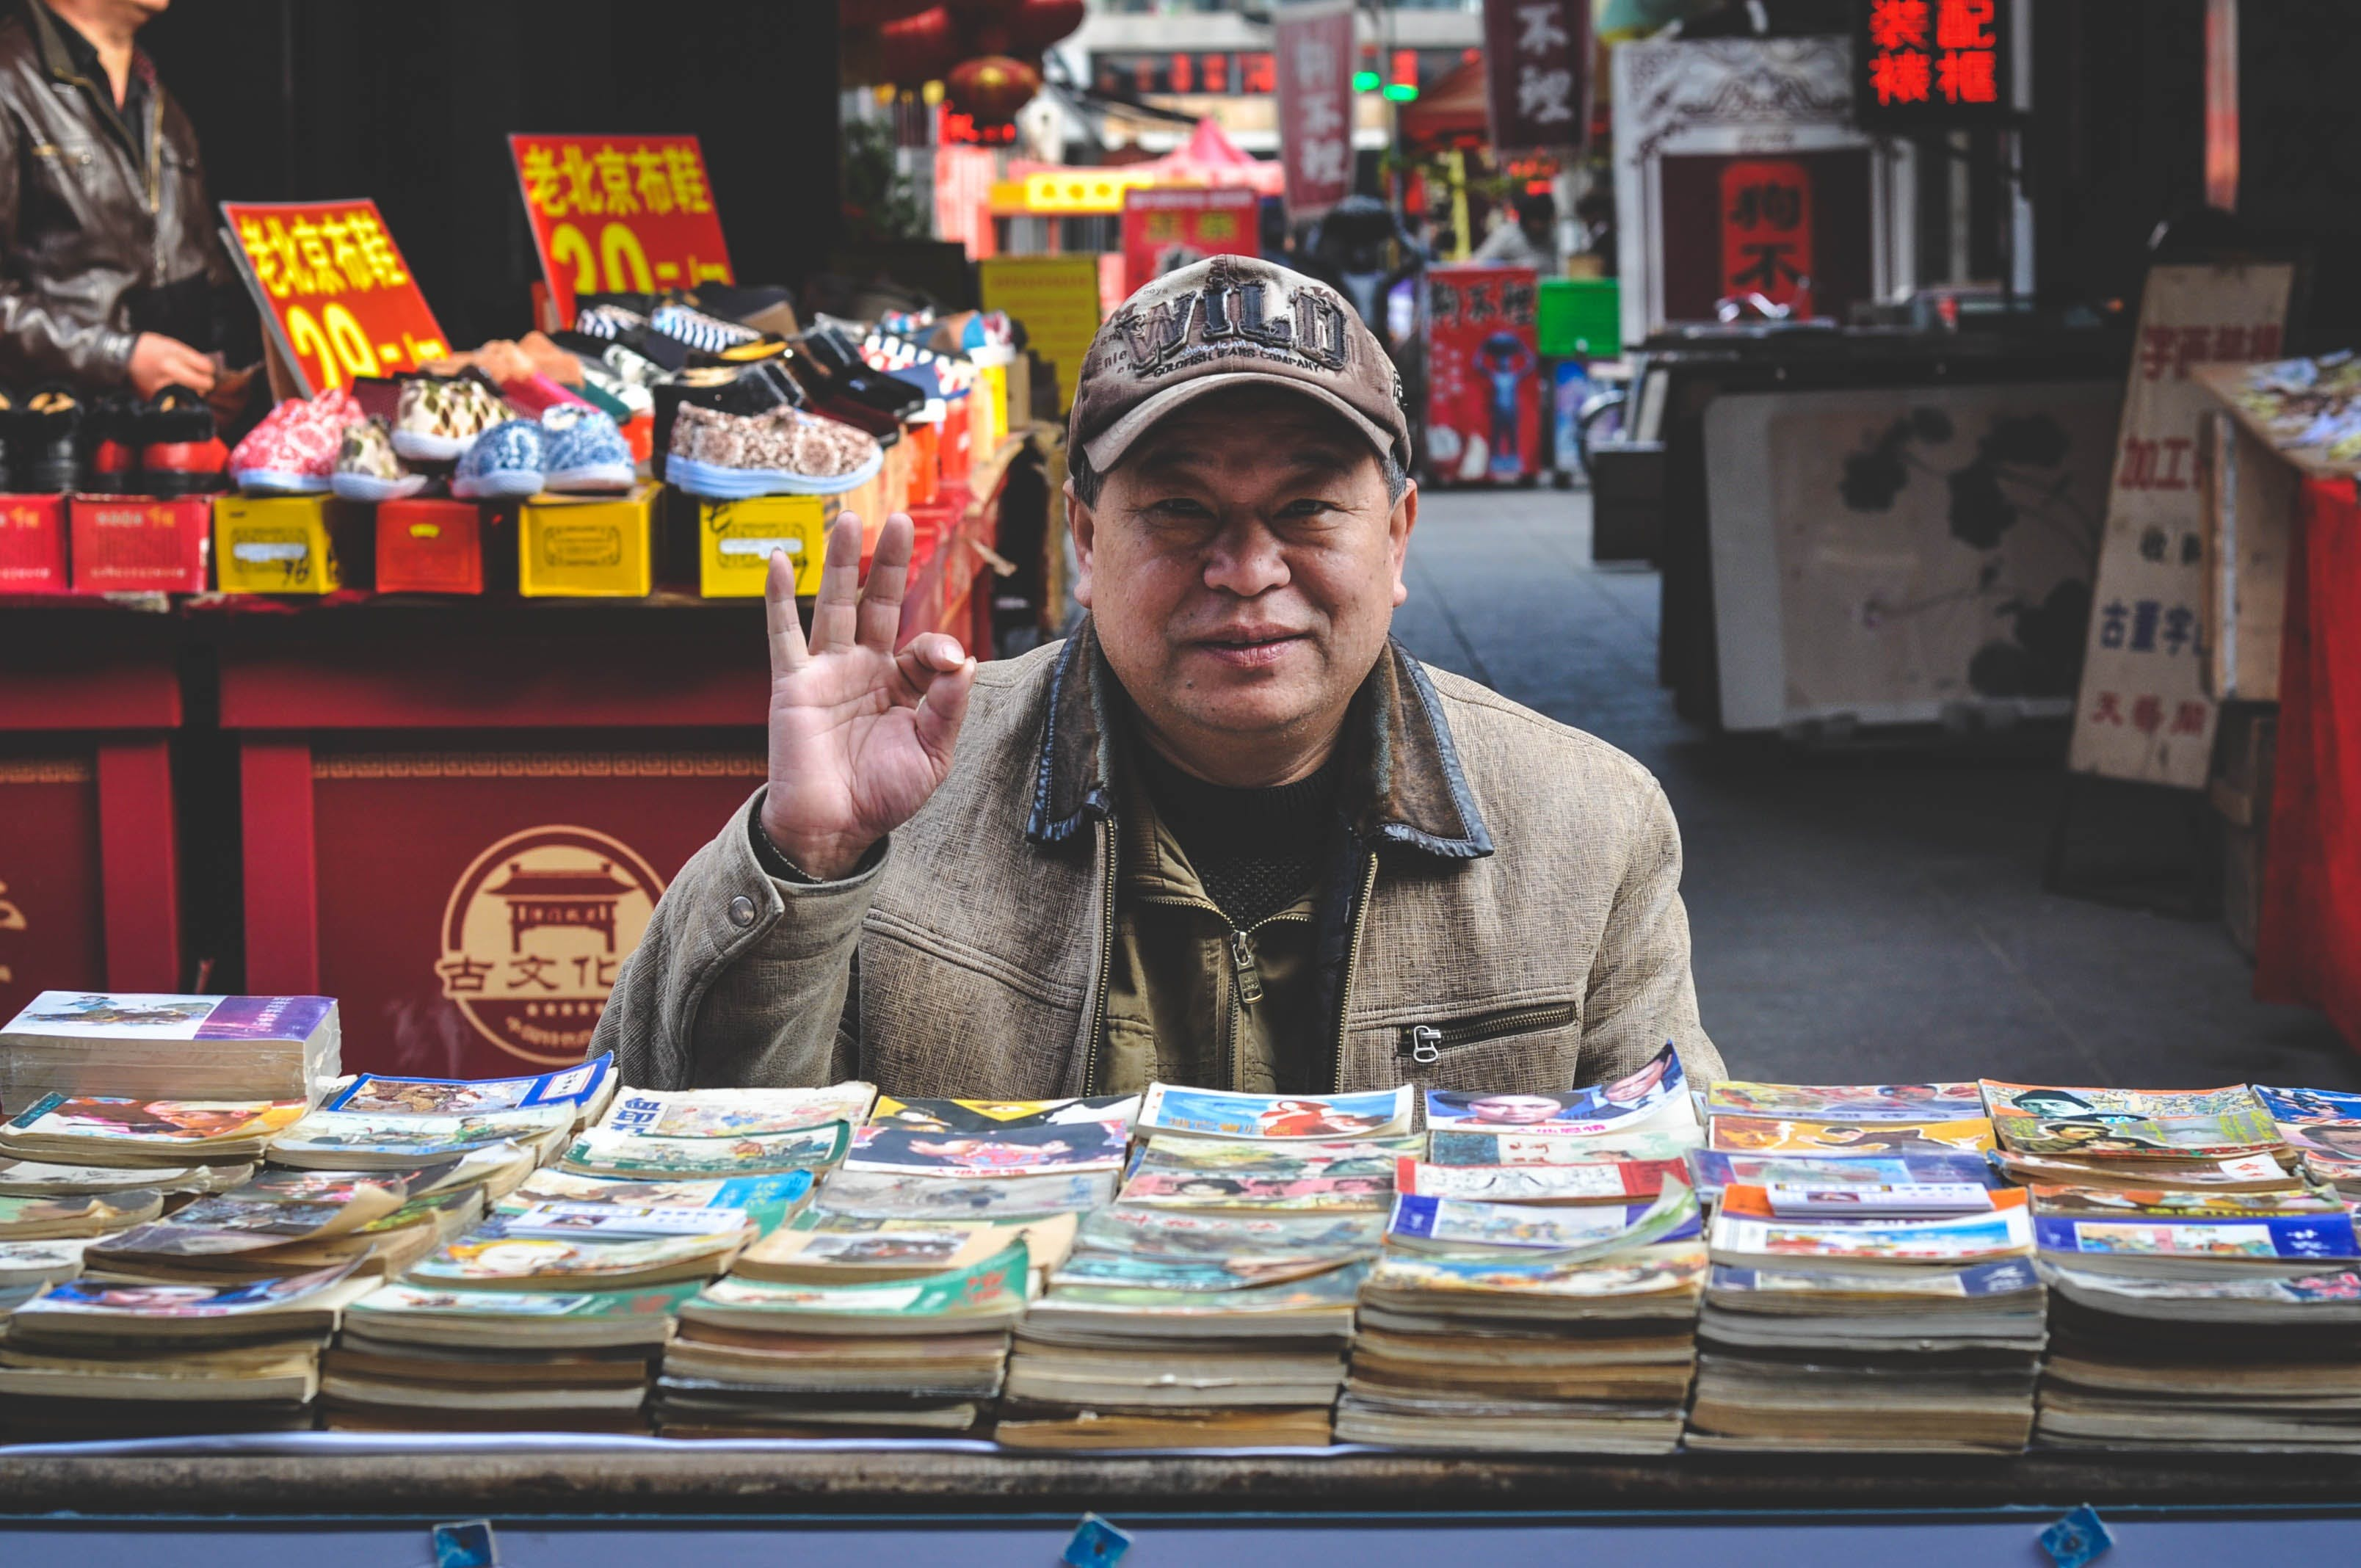 Man in Brown Coat in Front of Books